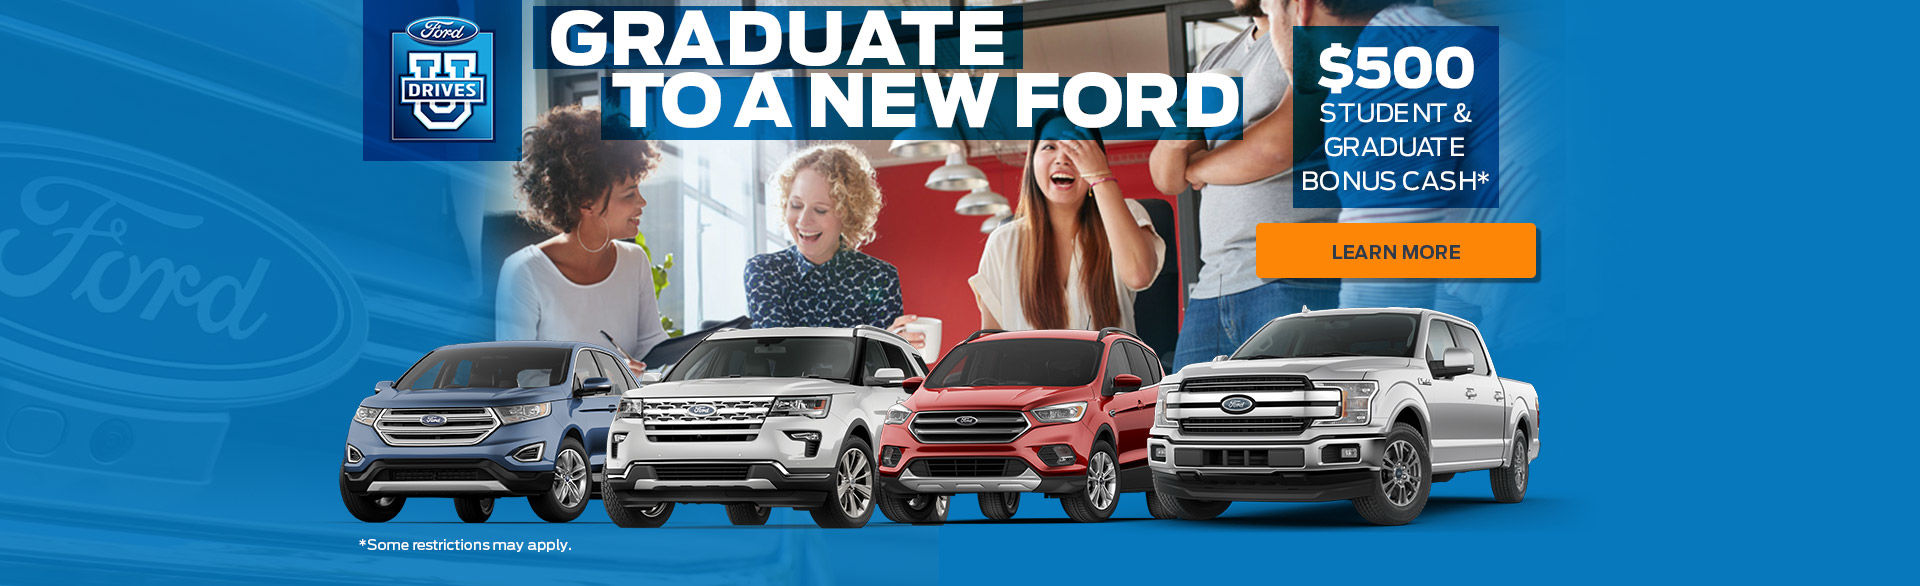 Graduate to a new ford